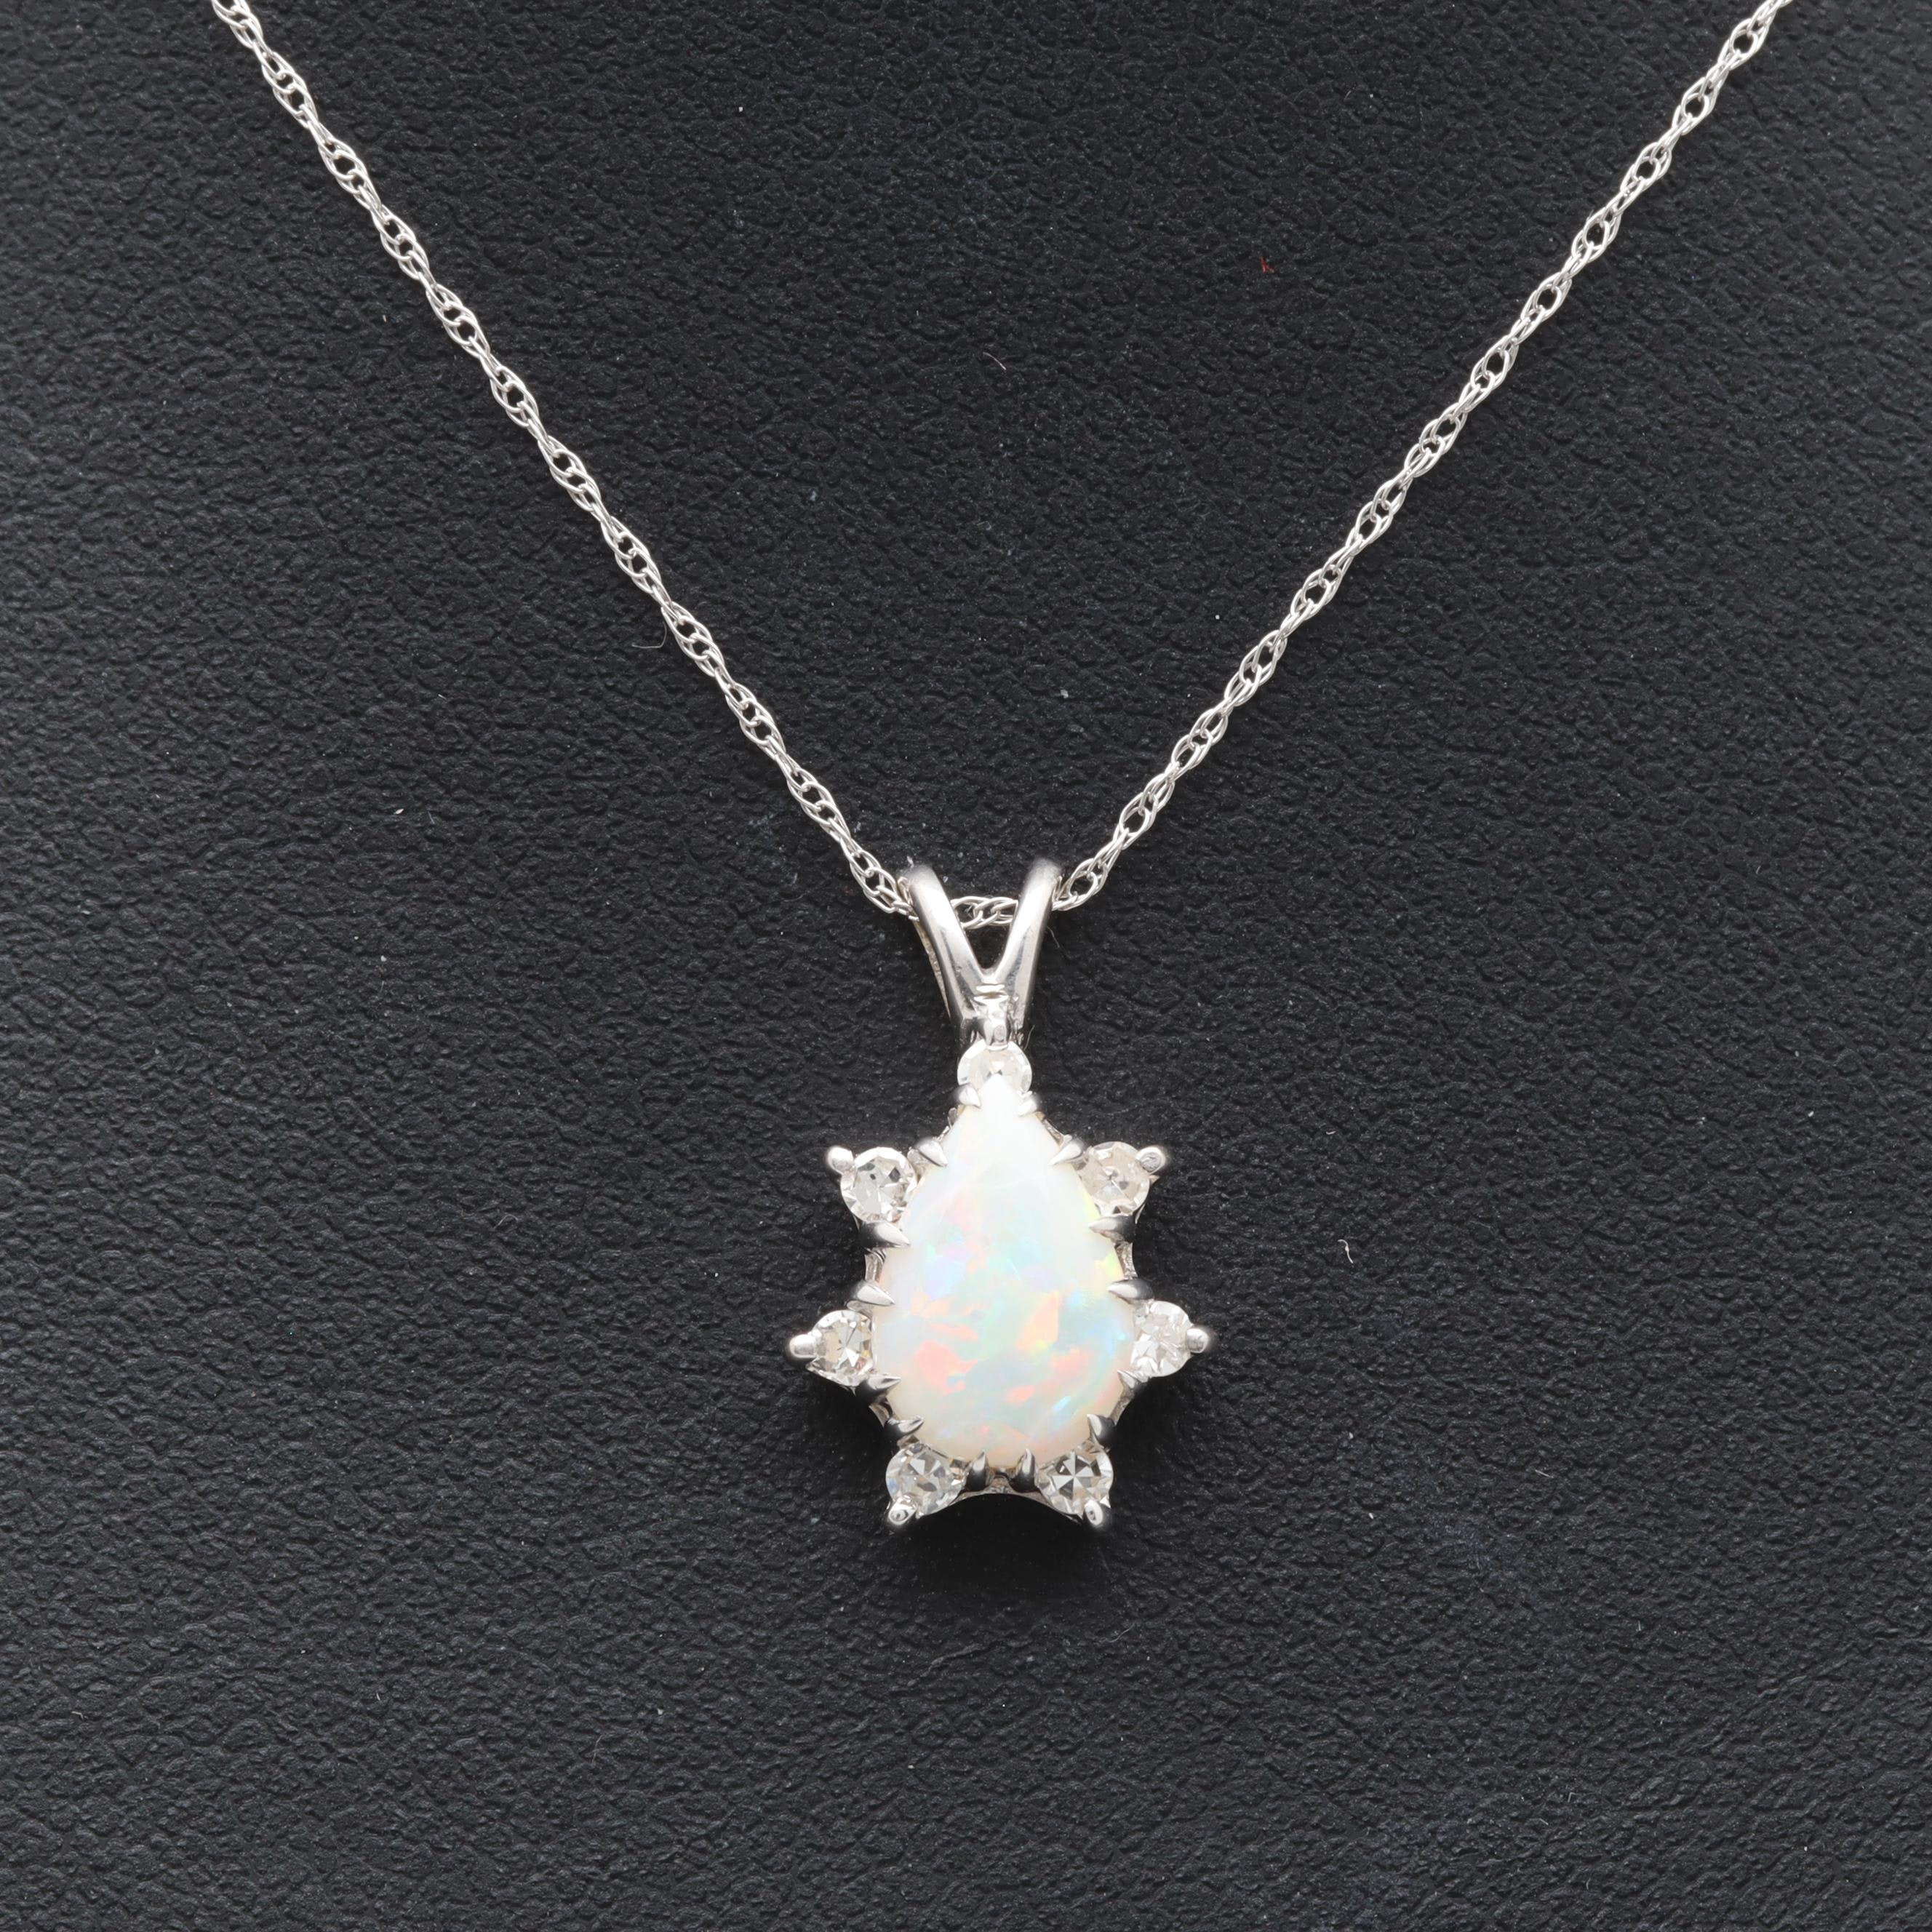 10K and 14K White Gold Opal and Diamond Pendant Necklace